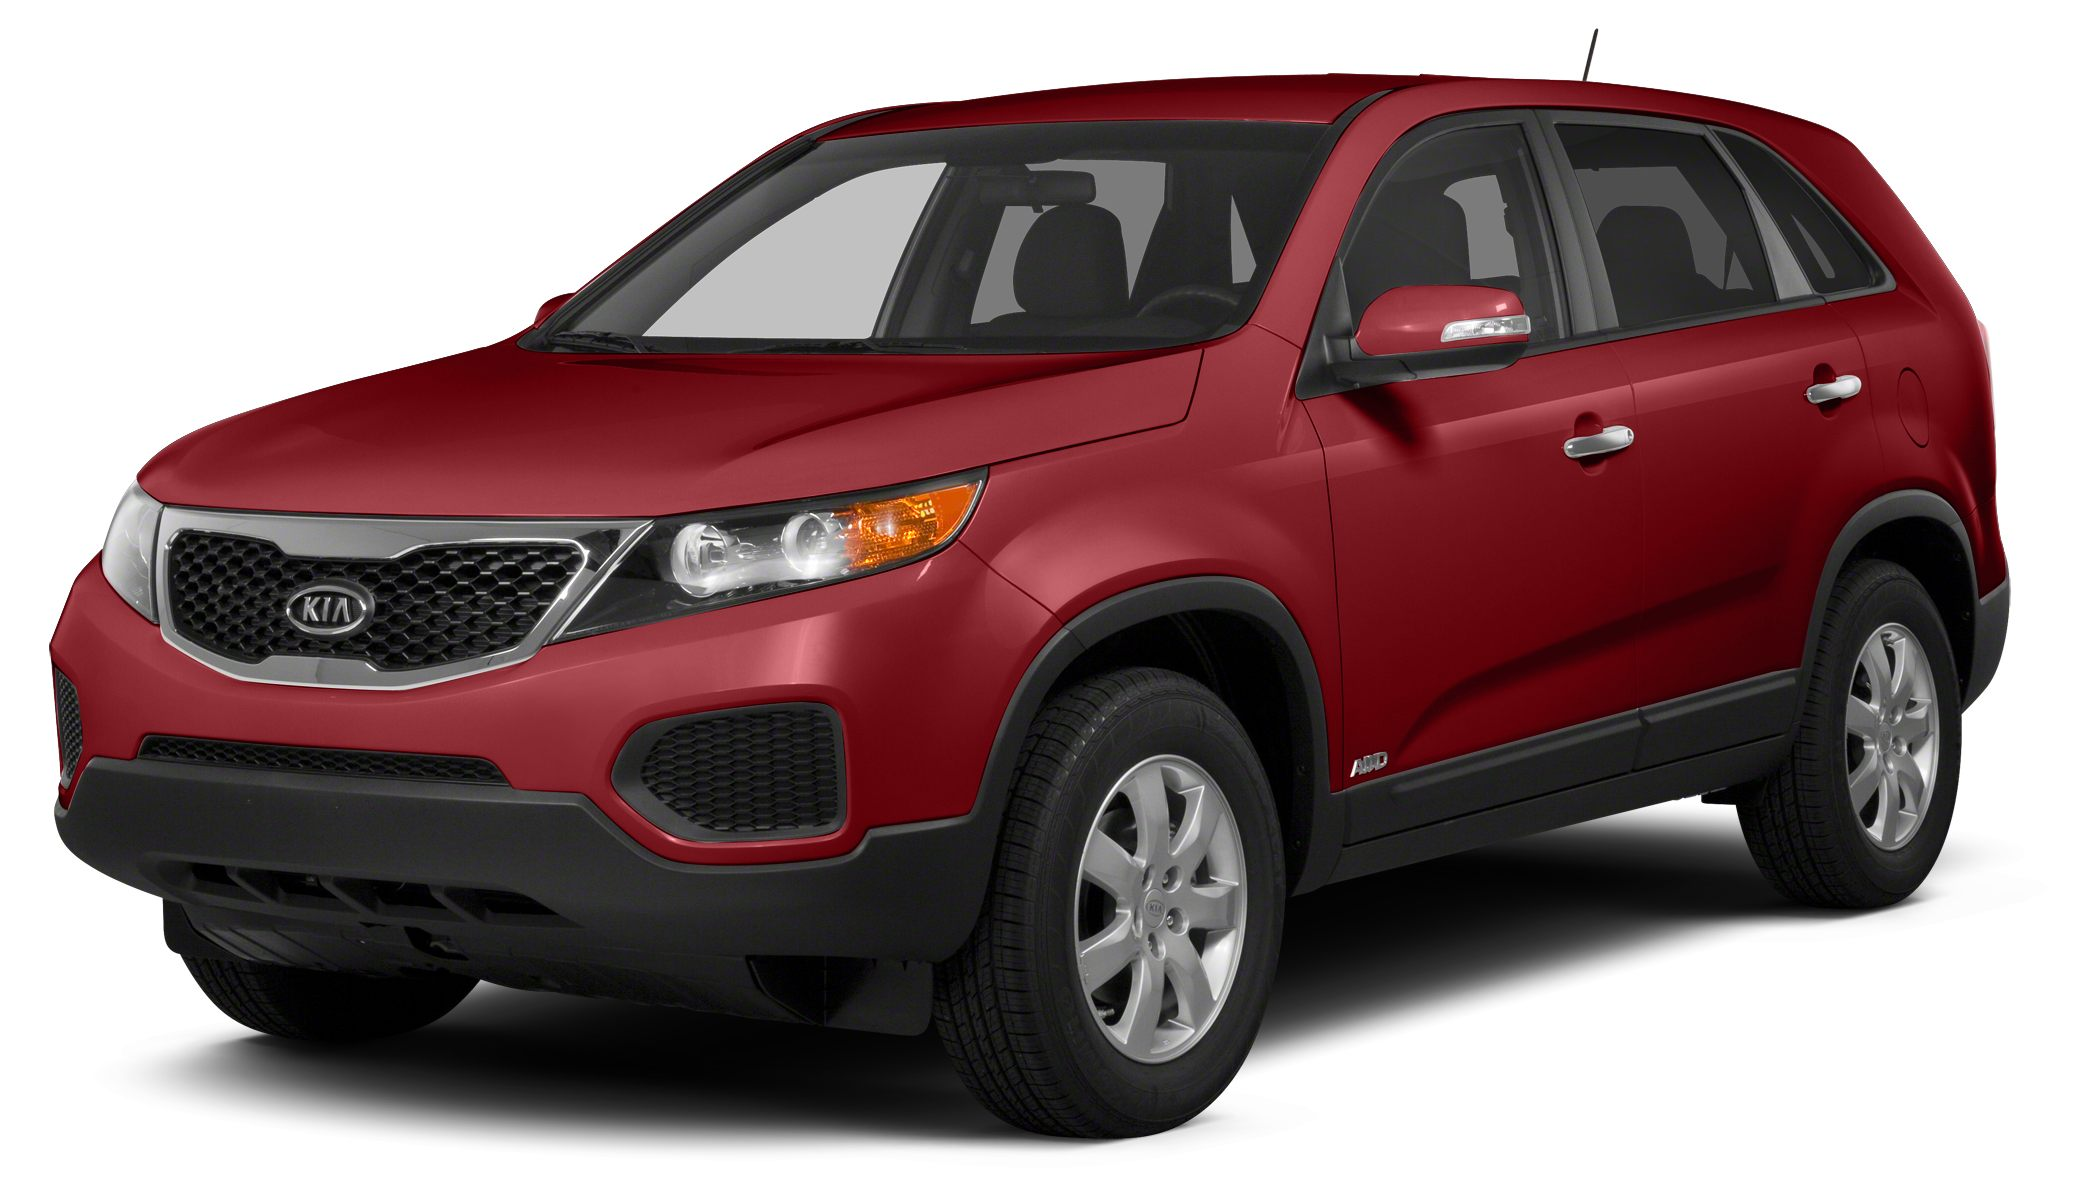 2011 Kia Sorento LX Vehicle Detailed Recent Oil Change and Passed Dealer Inspection Has stickin